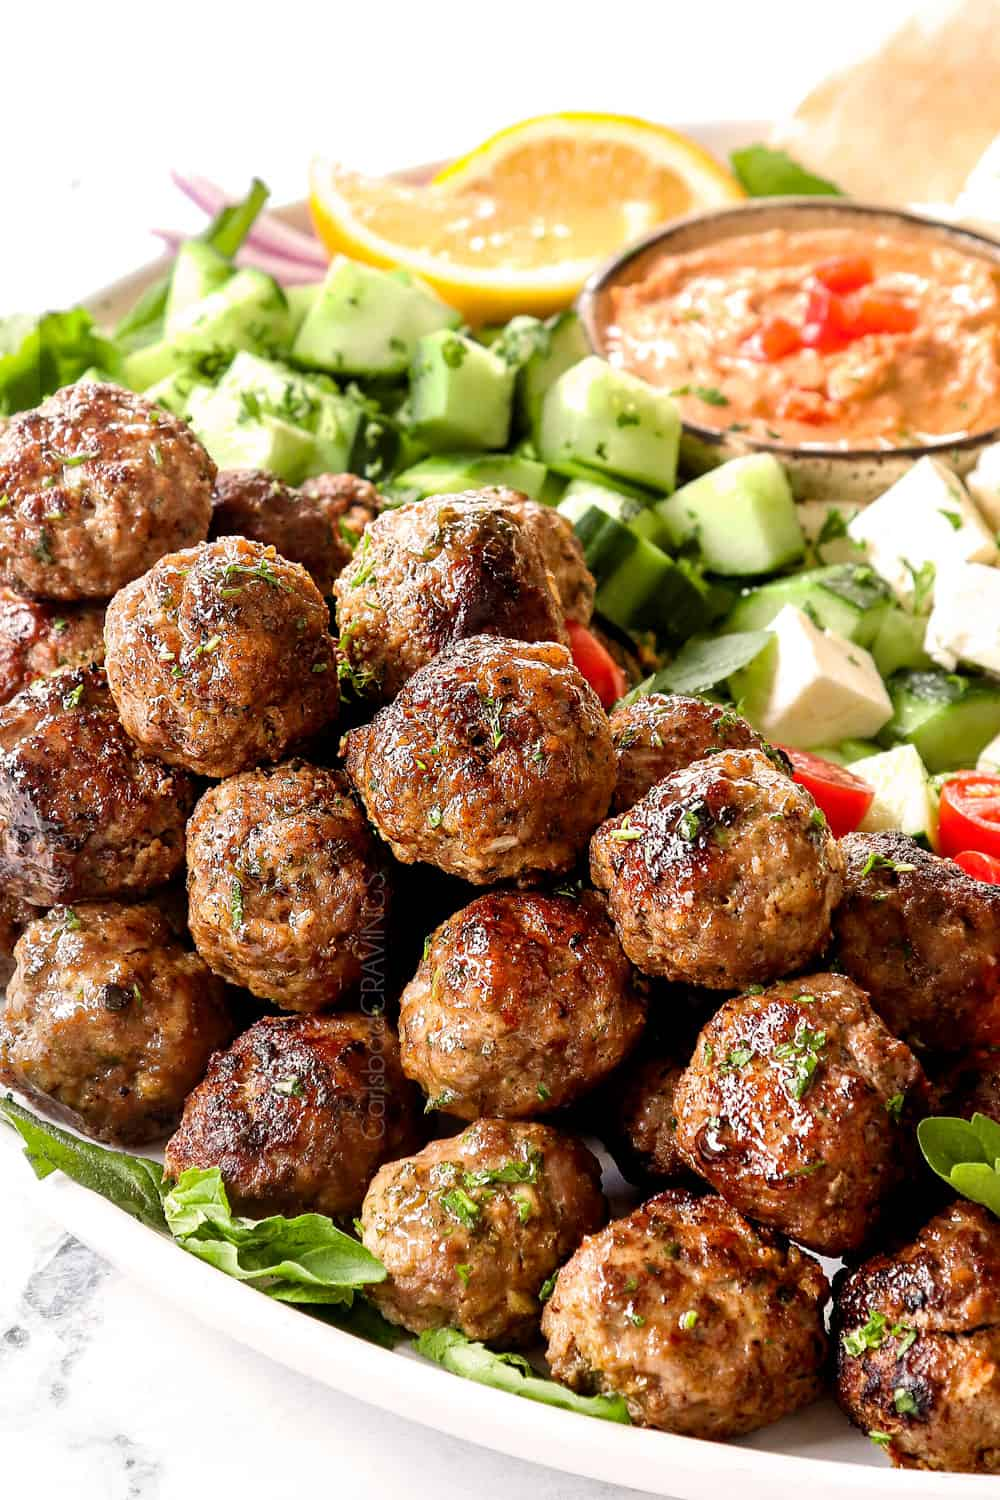 Greek Meatball recipe on a white platter with cucumbers and hummus showing how juicy they are